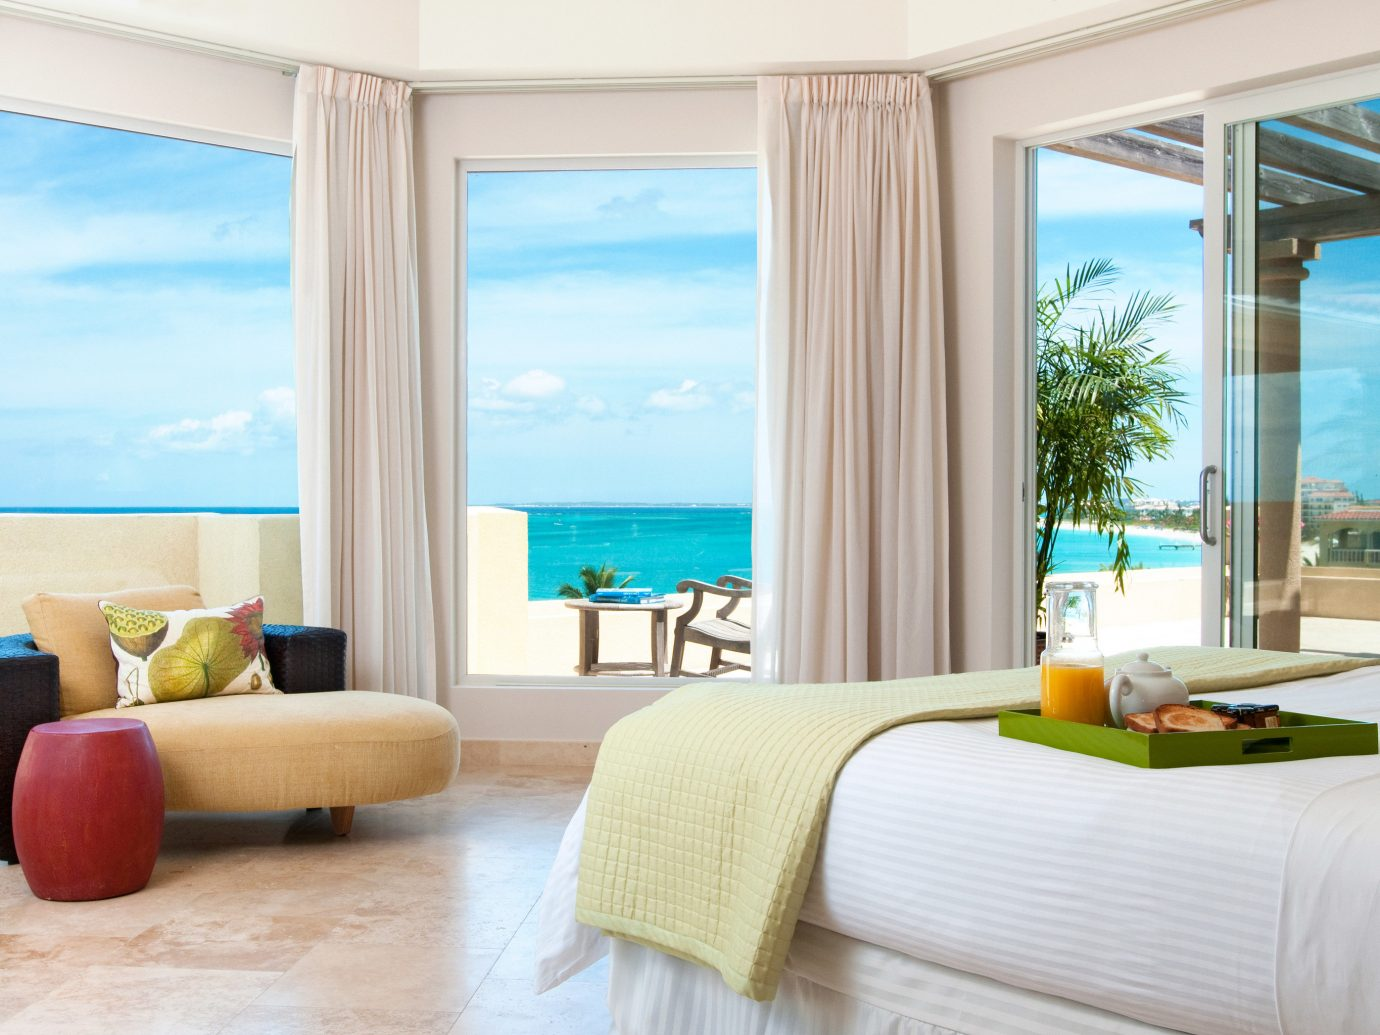 Beachfront Hotels Living Luxury Romance Scenic views window indoor floor sofa room property ceiling hotel living room bed nice interior design condominium home real estate Suite furniture window covering overlooking estate Design apartment flat decorated